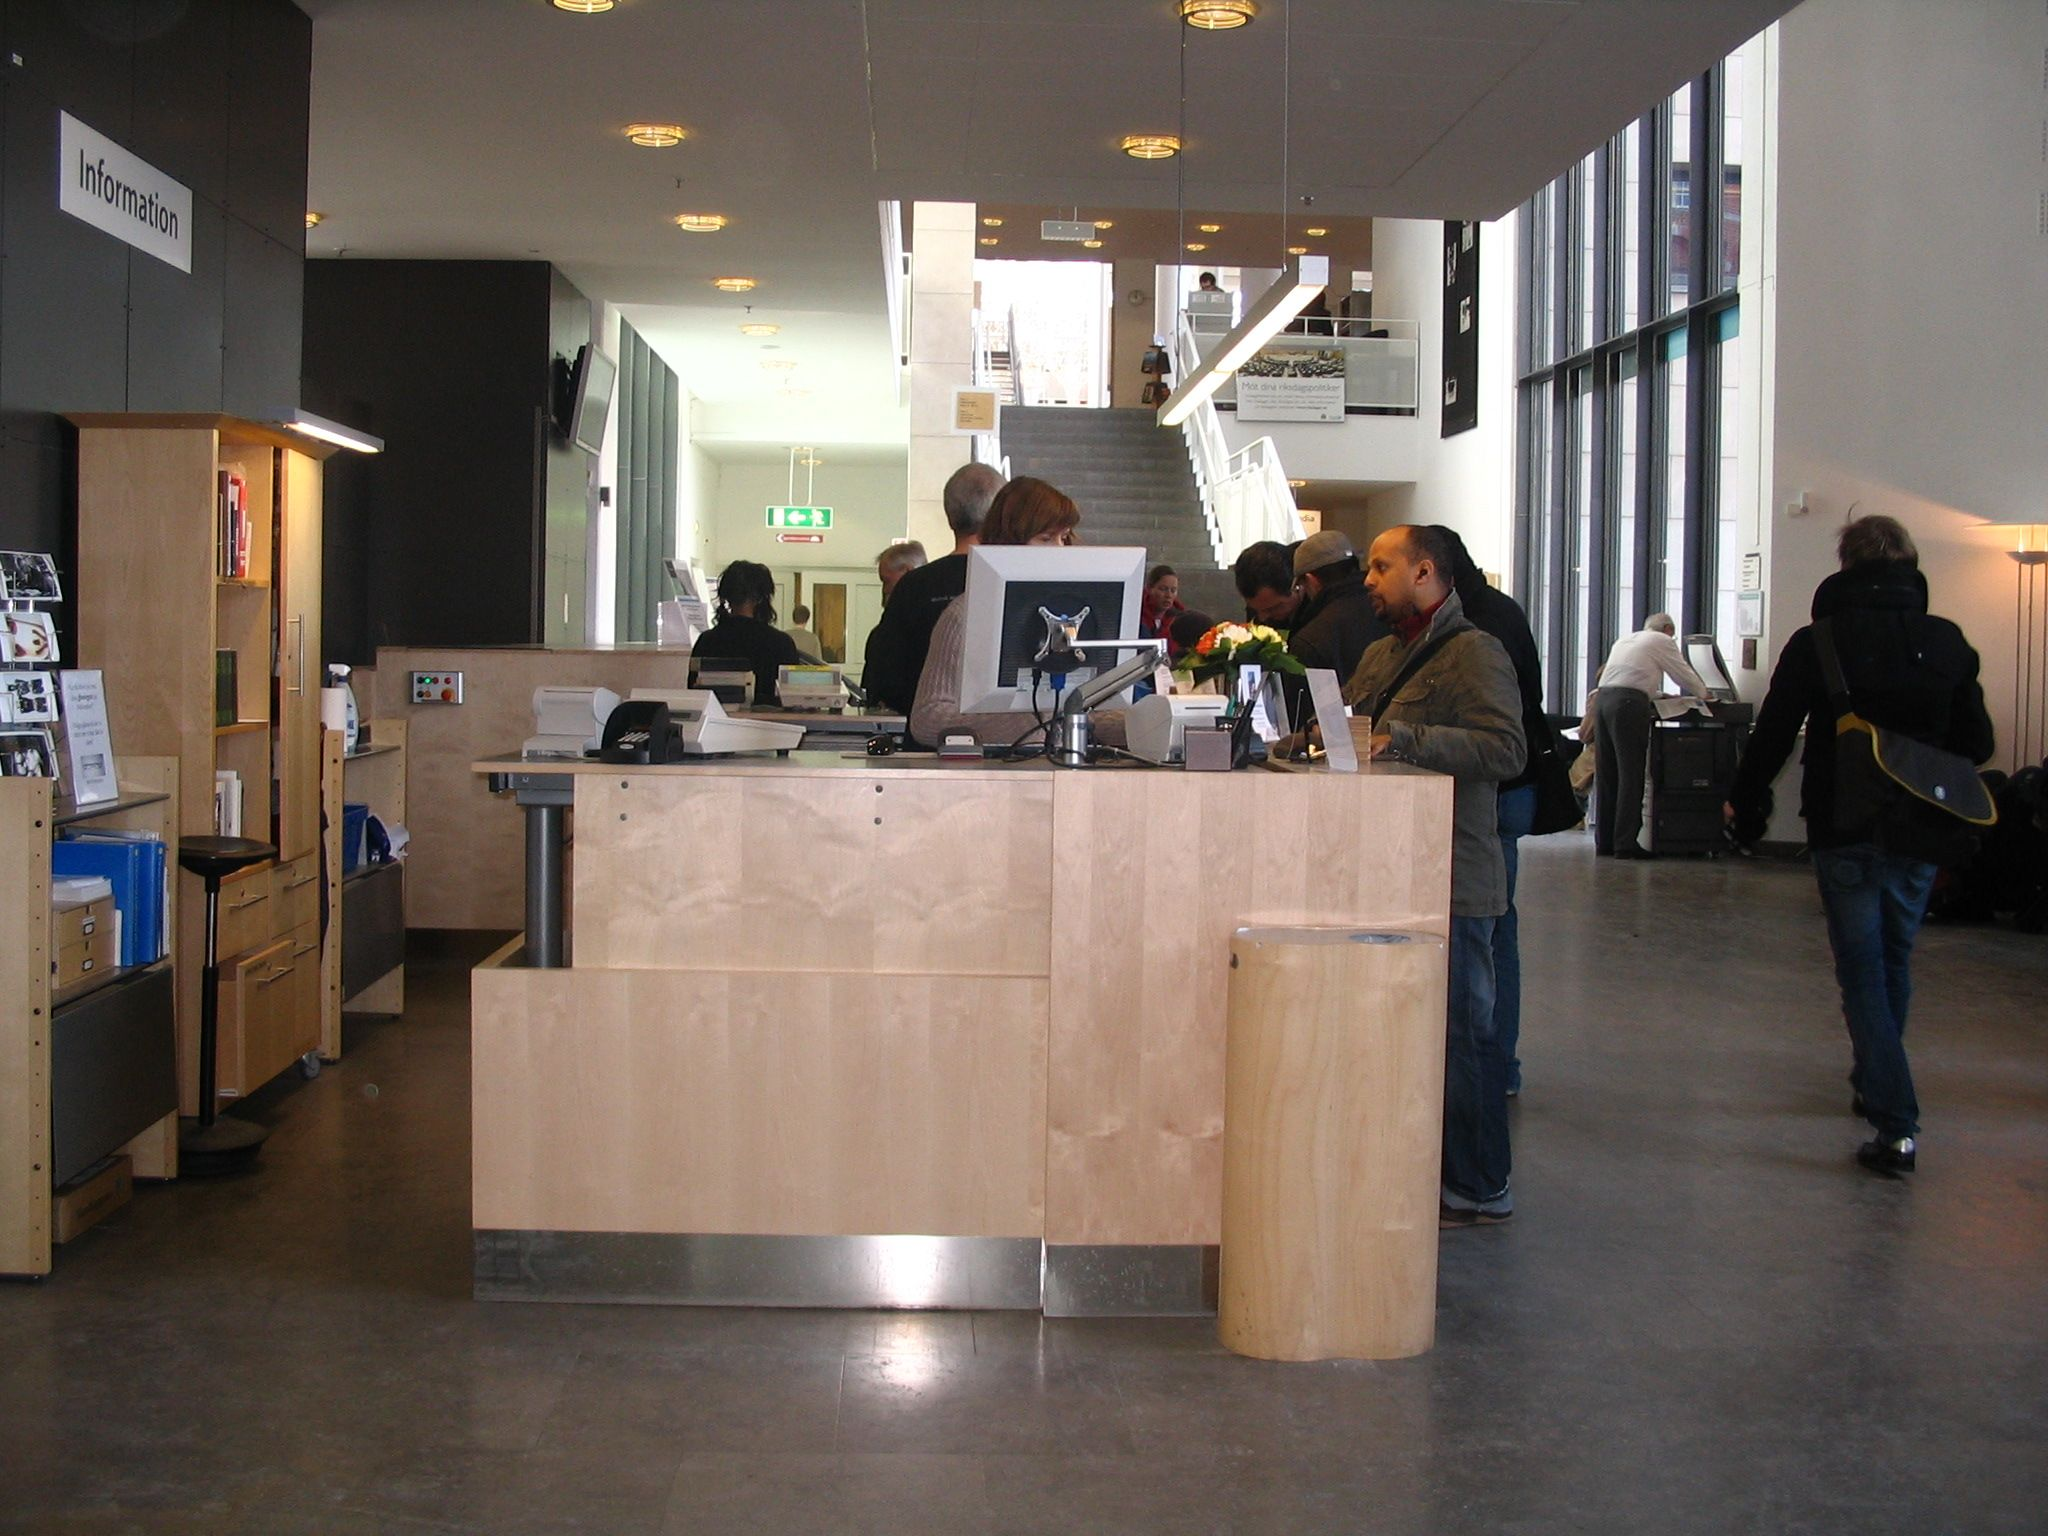 Malmo information desk